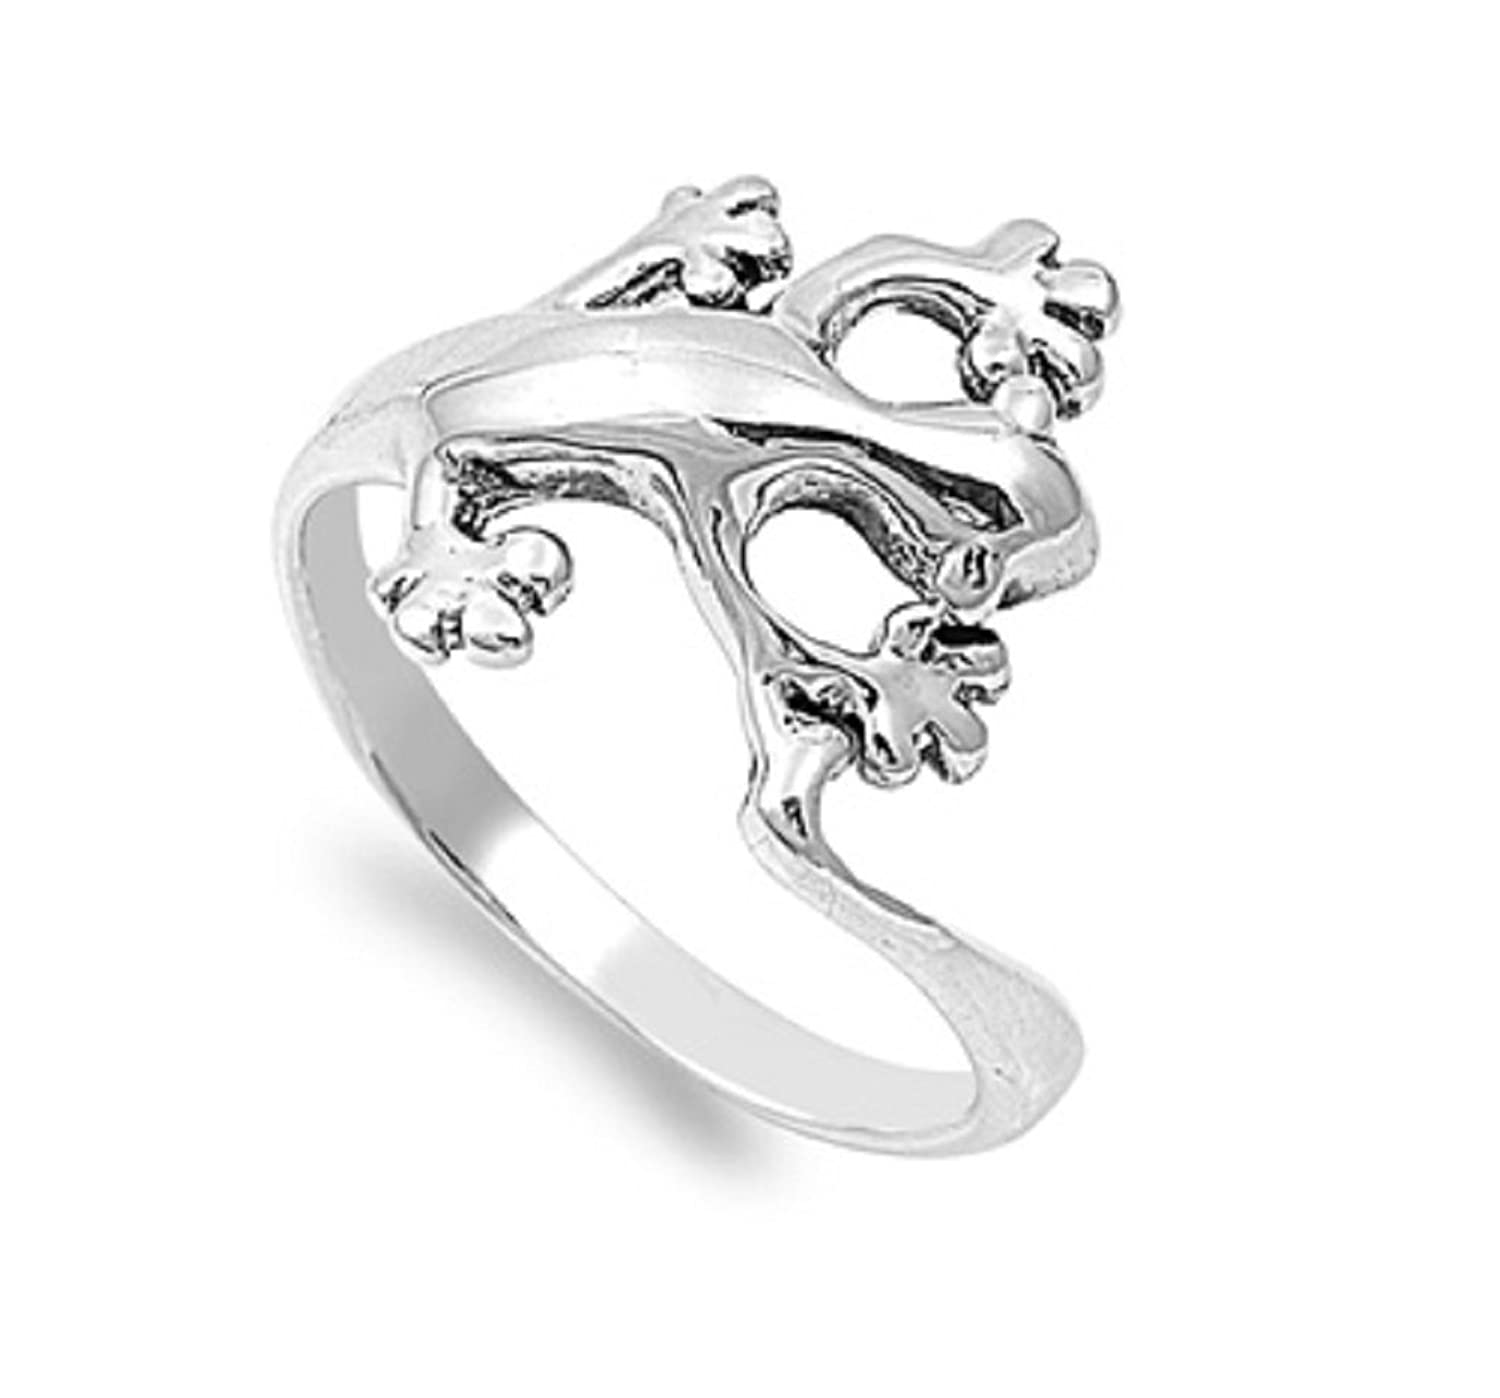 gecko ring midi sterling toe bling jewelry reptile rings silver pmr lizard adjustable